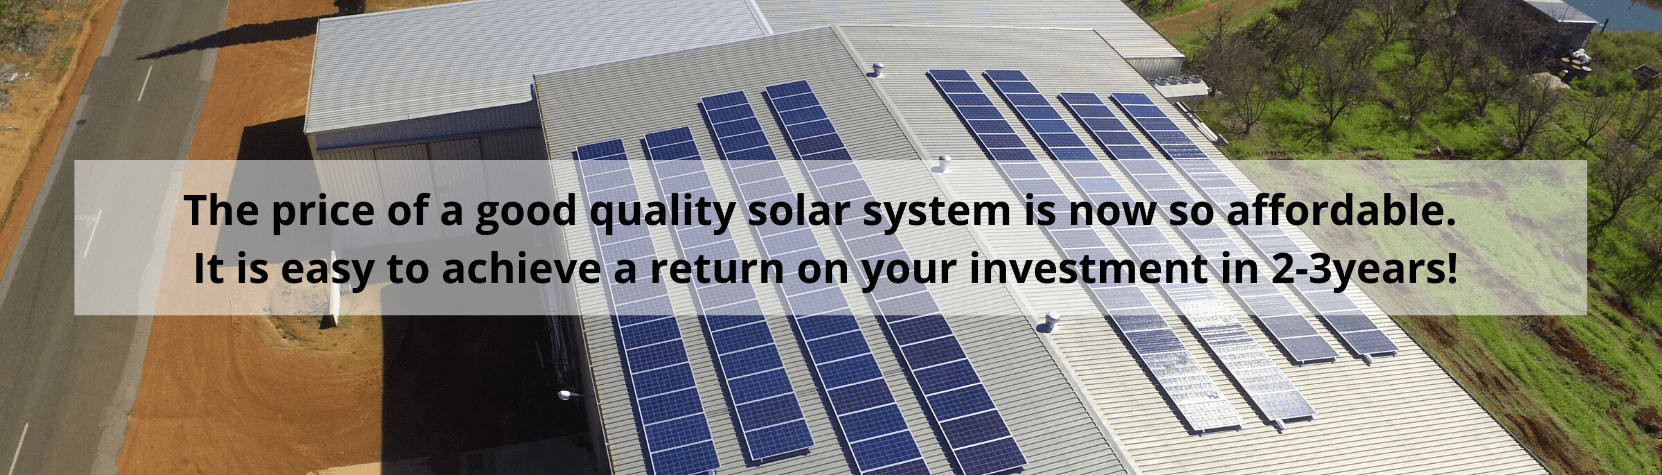 Affordable High Quality Solar System Installers in Perth